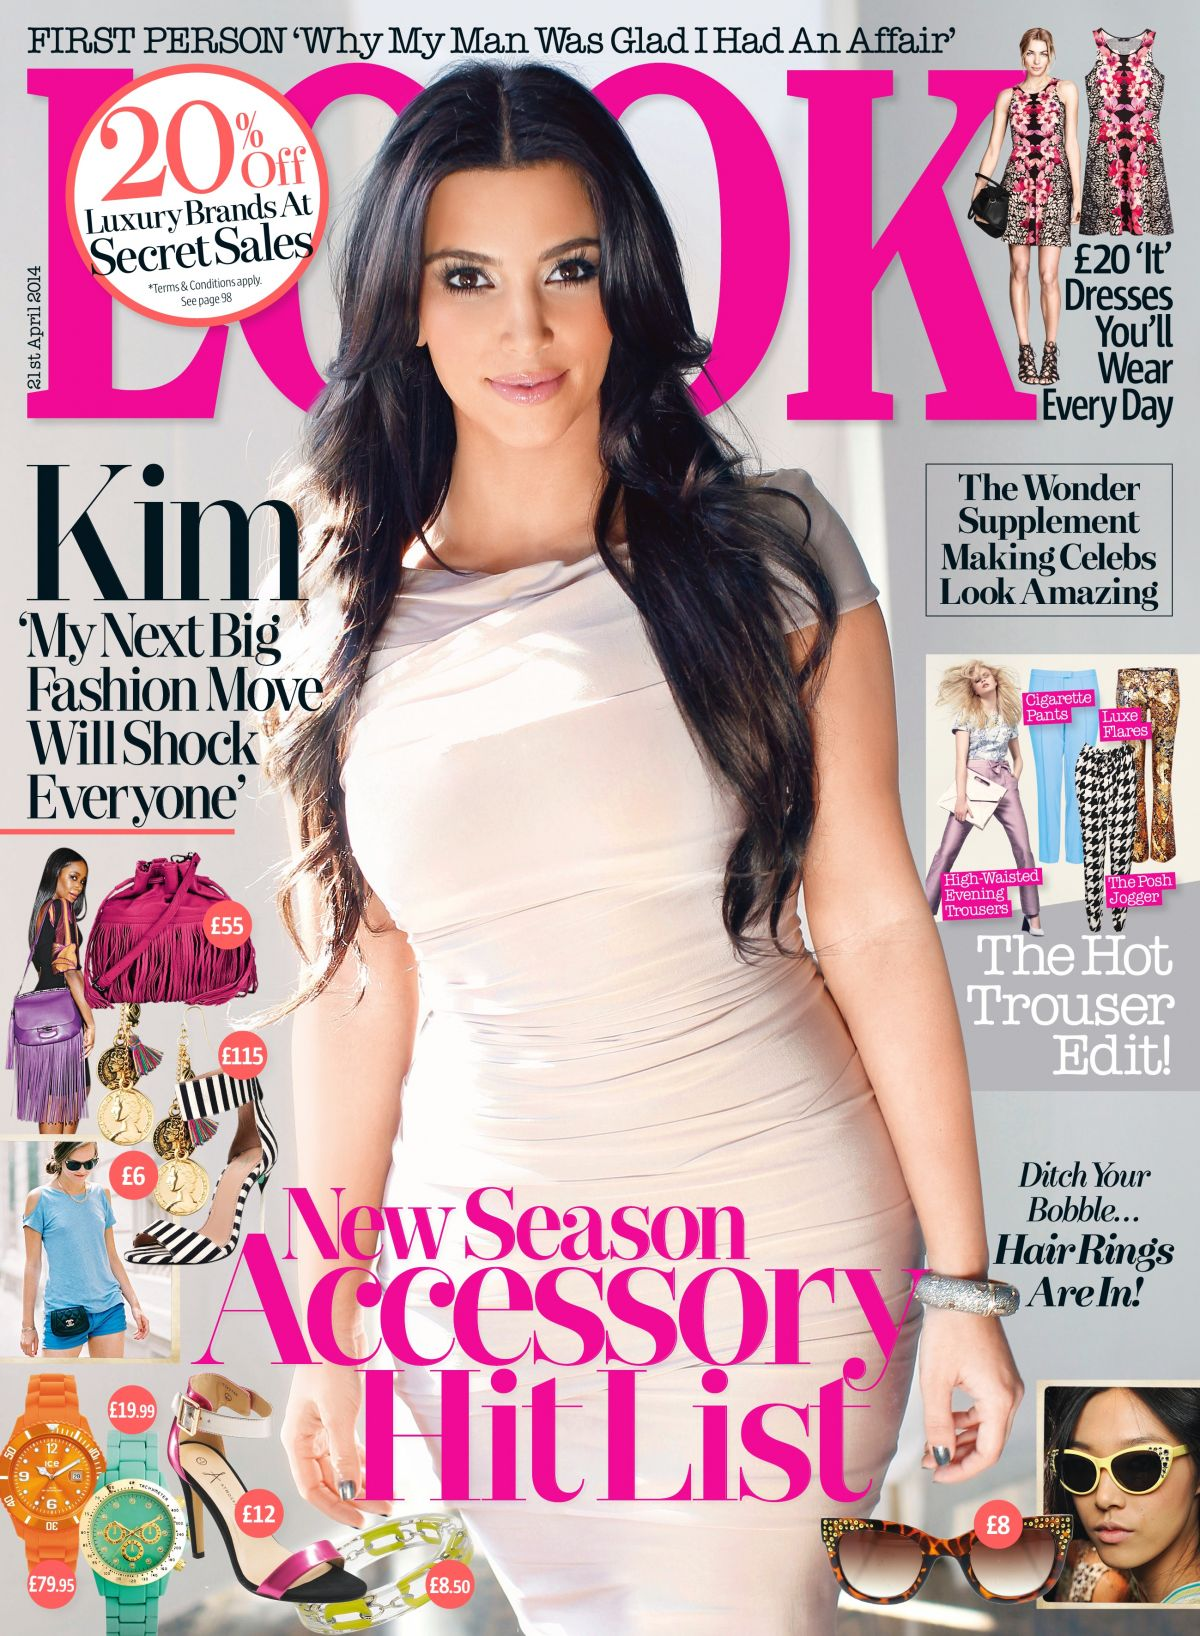 KIM KARDASHIAN on the Cover of Look Magazine, April 2014 Issue